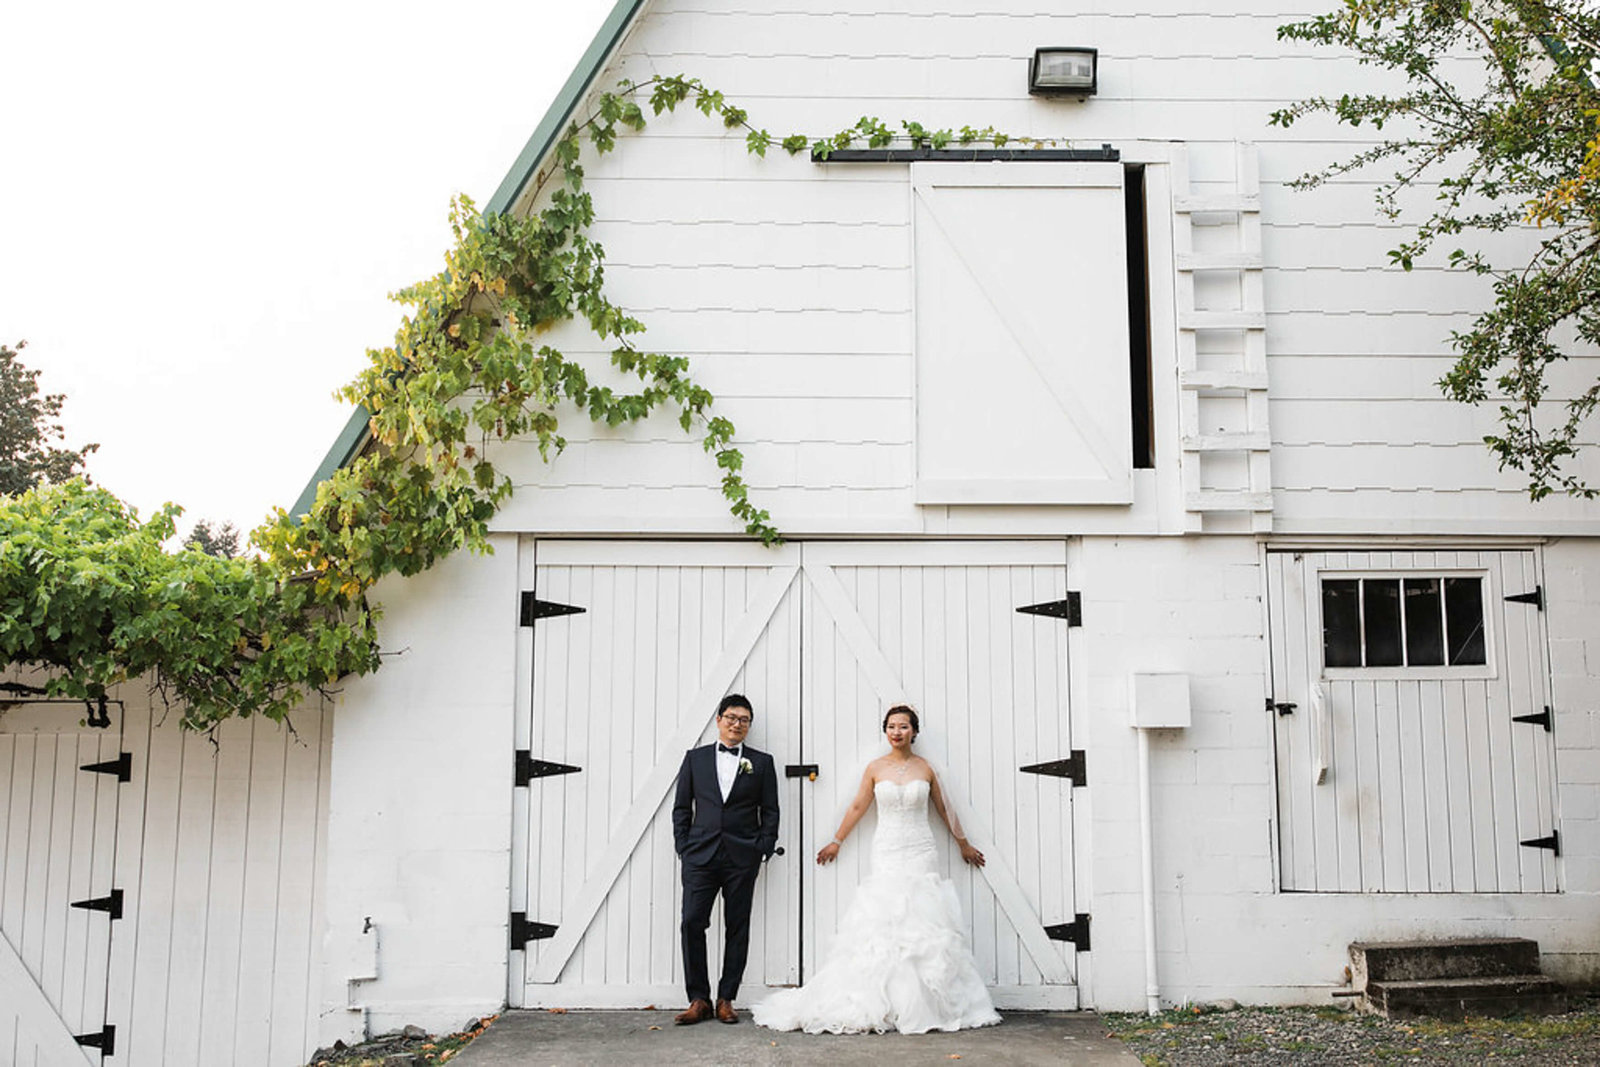 Qian+Jackson_DeLille_Cellars_Woodinville_wedding_by_Adina_Preston_Weddings296